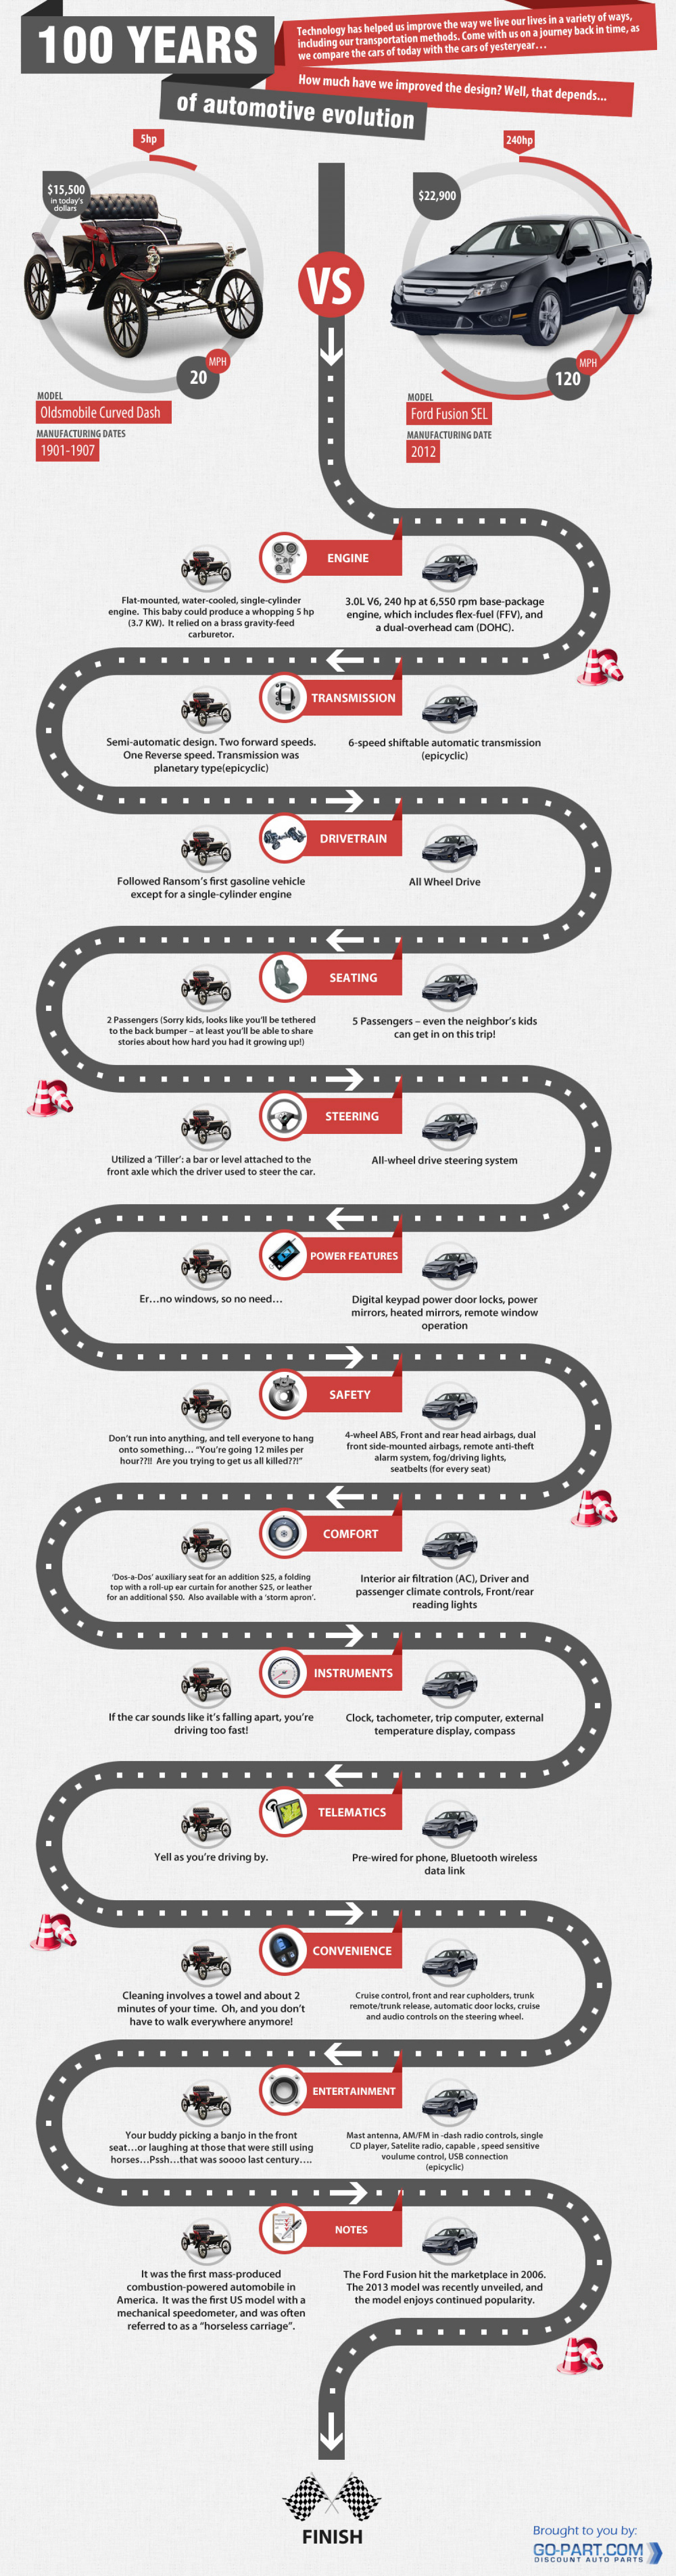 100 Years of Automotive Evolution Infographic